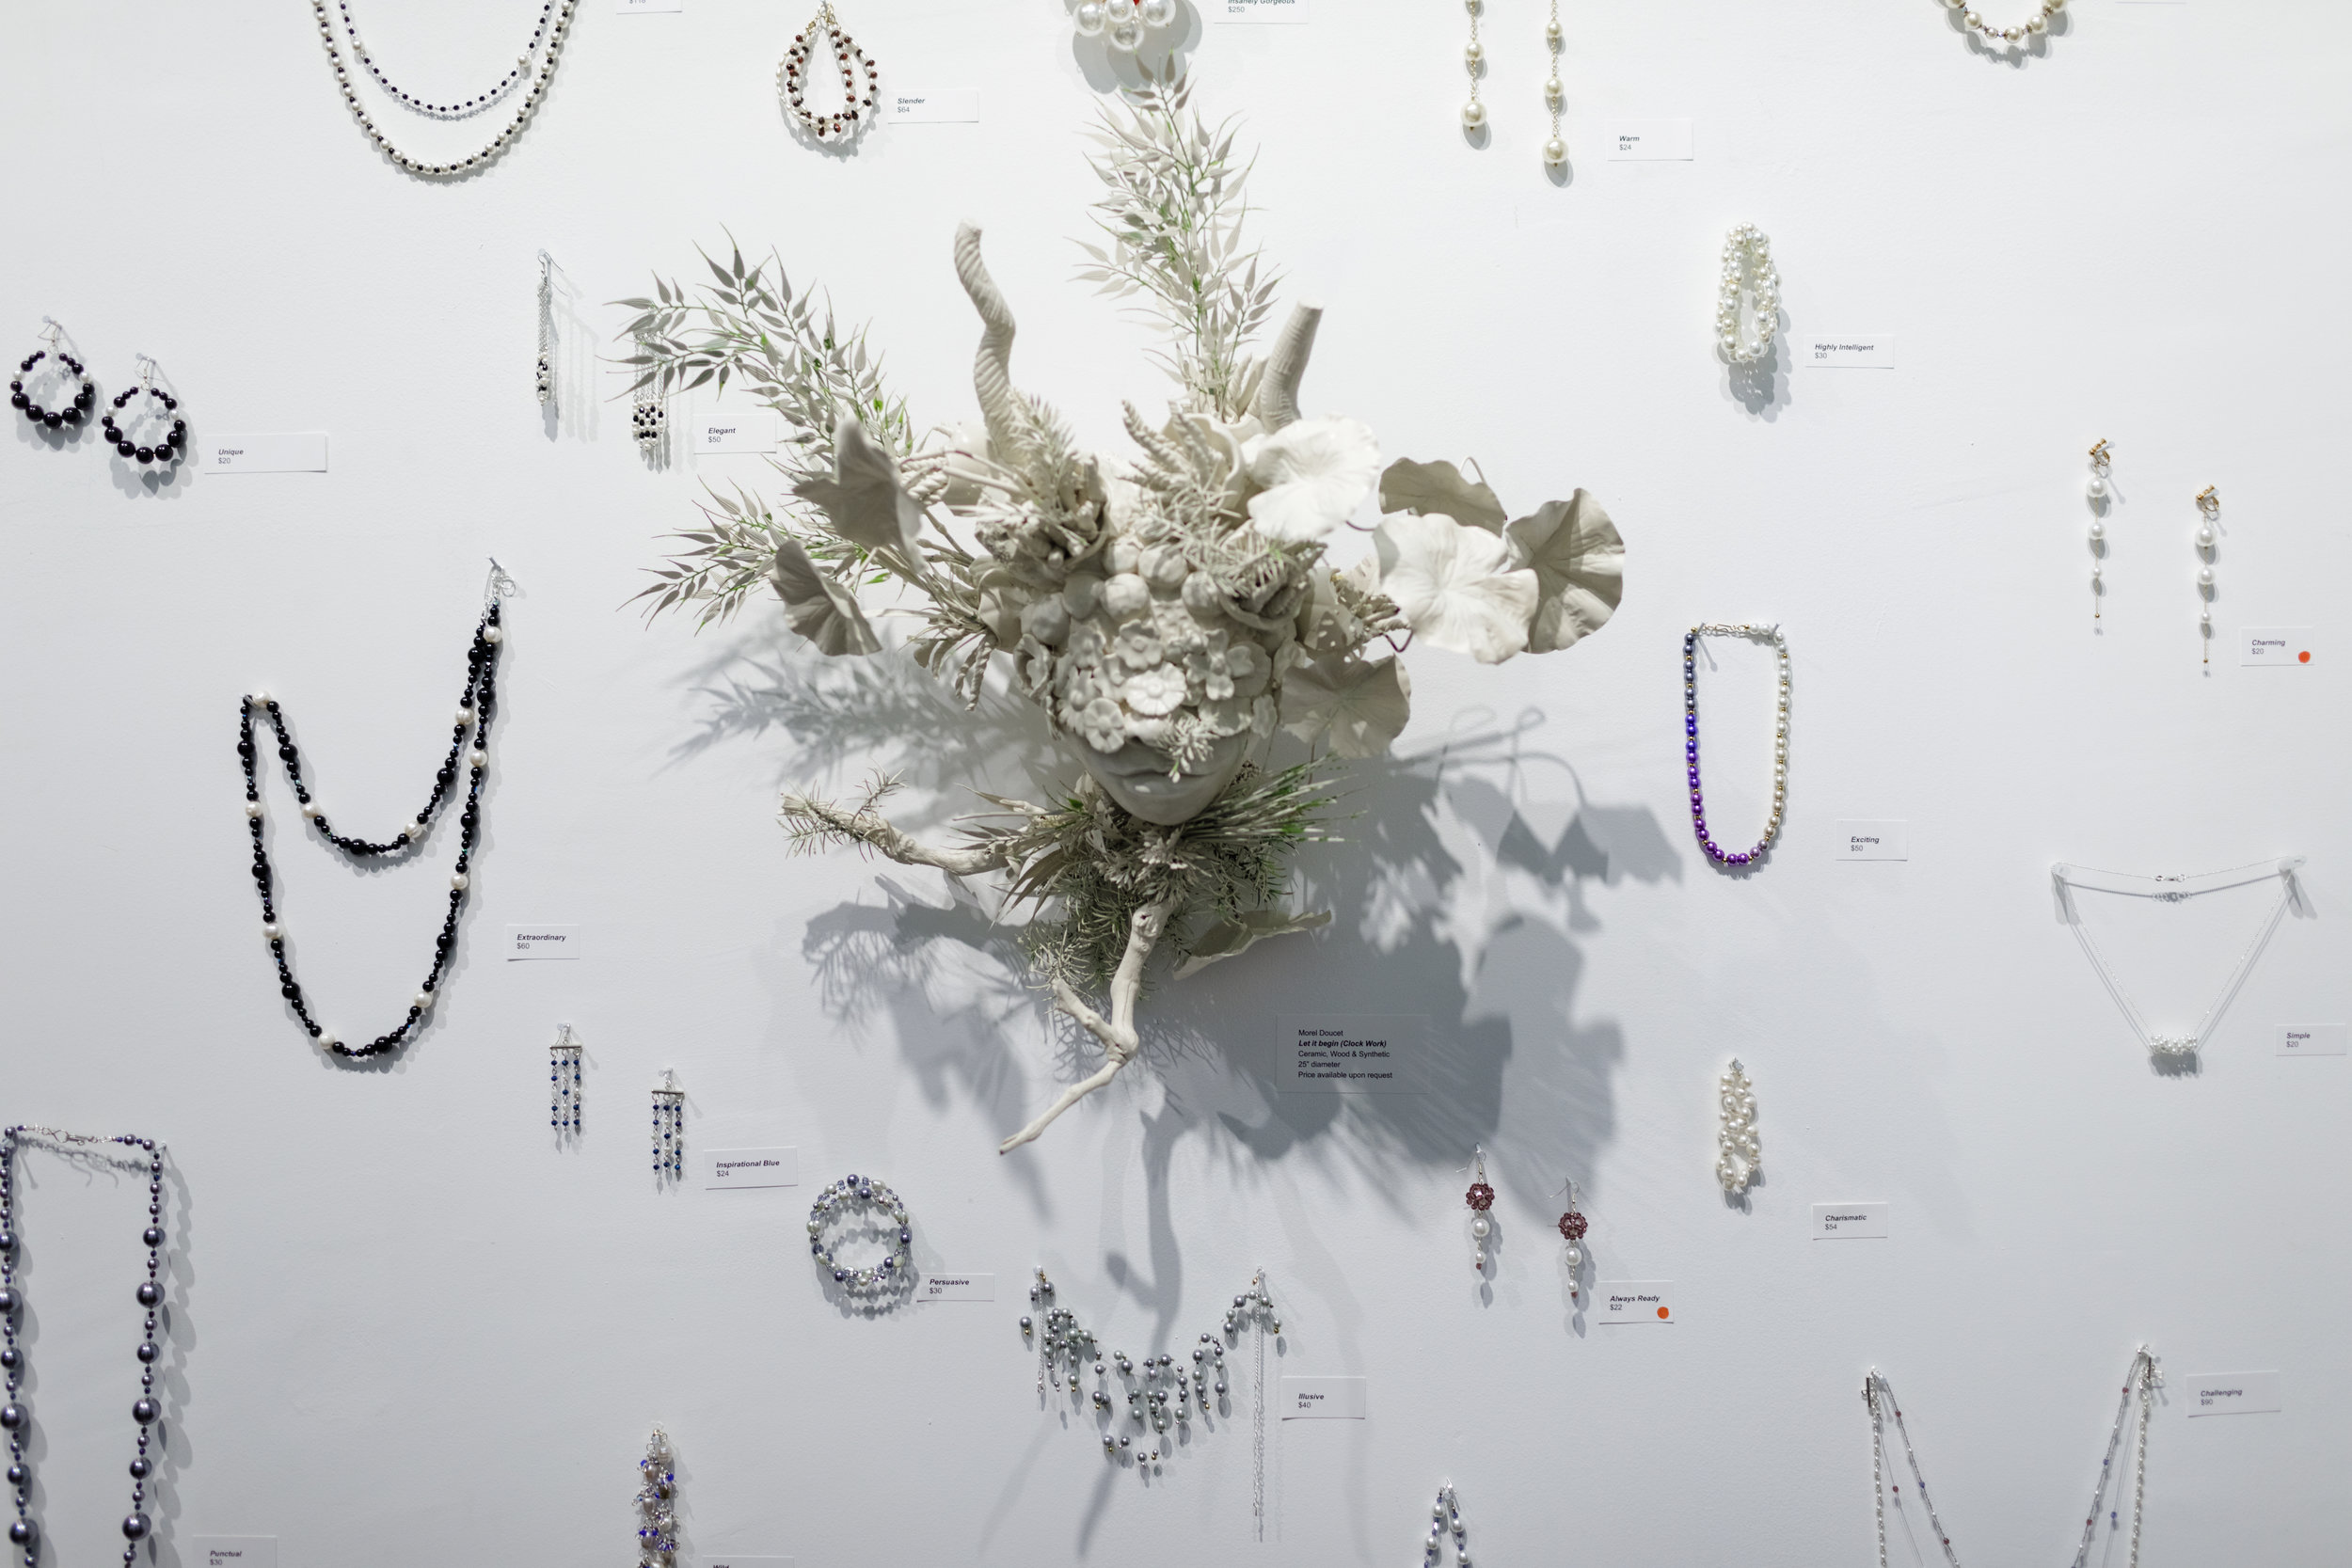 Photo from last year's event at Northwyn Studios, Origins: Mother & Nature, in collaboration with ceramist Morel Doucet.